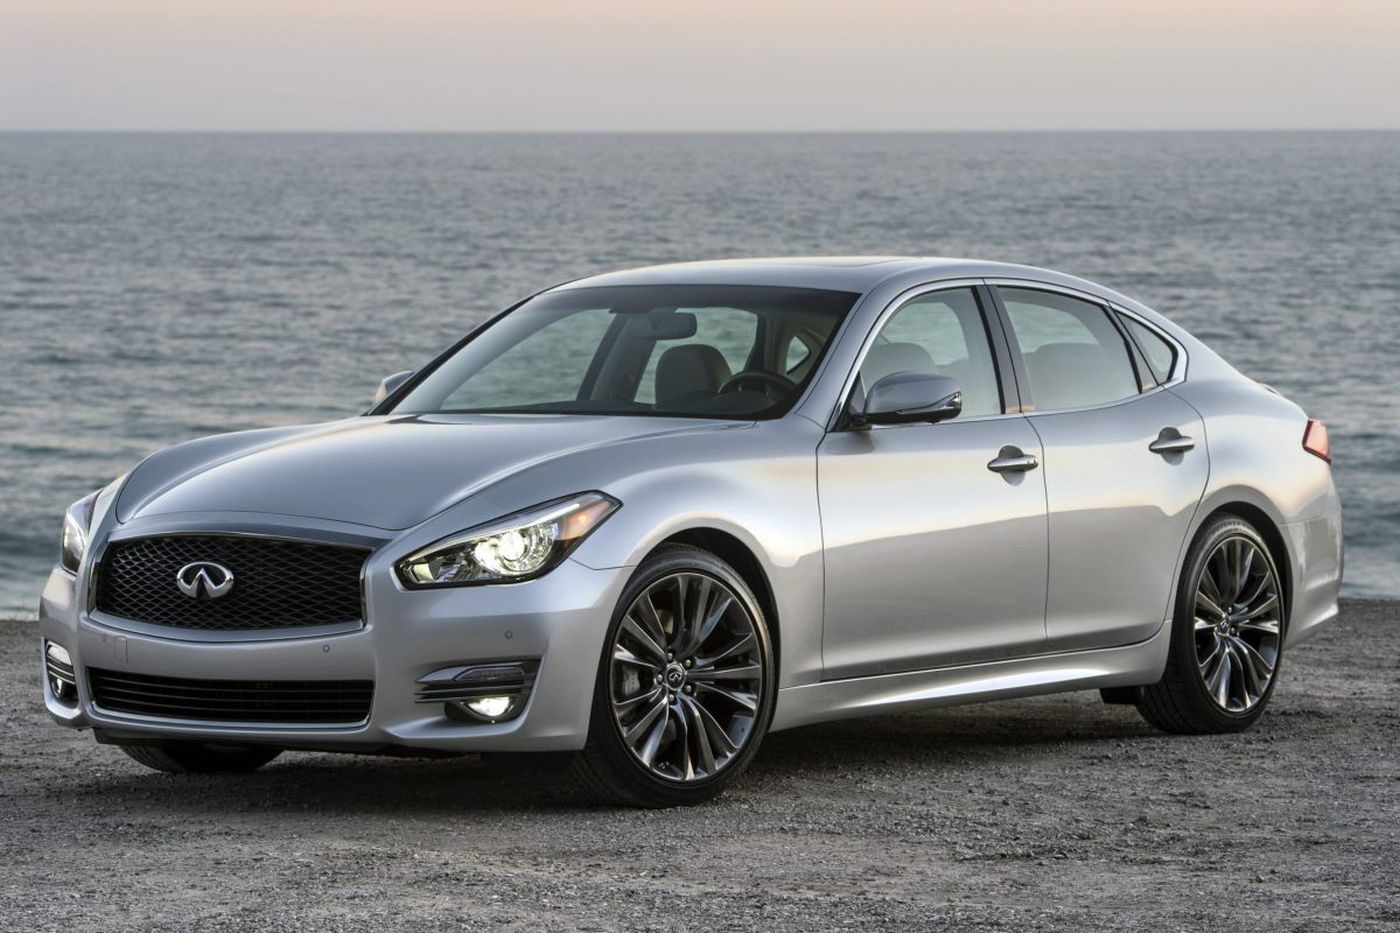 Infiniti Q70 offers beauty and luxury, but performance?